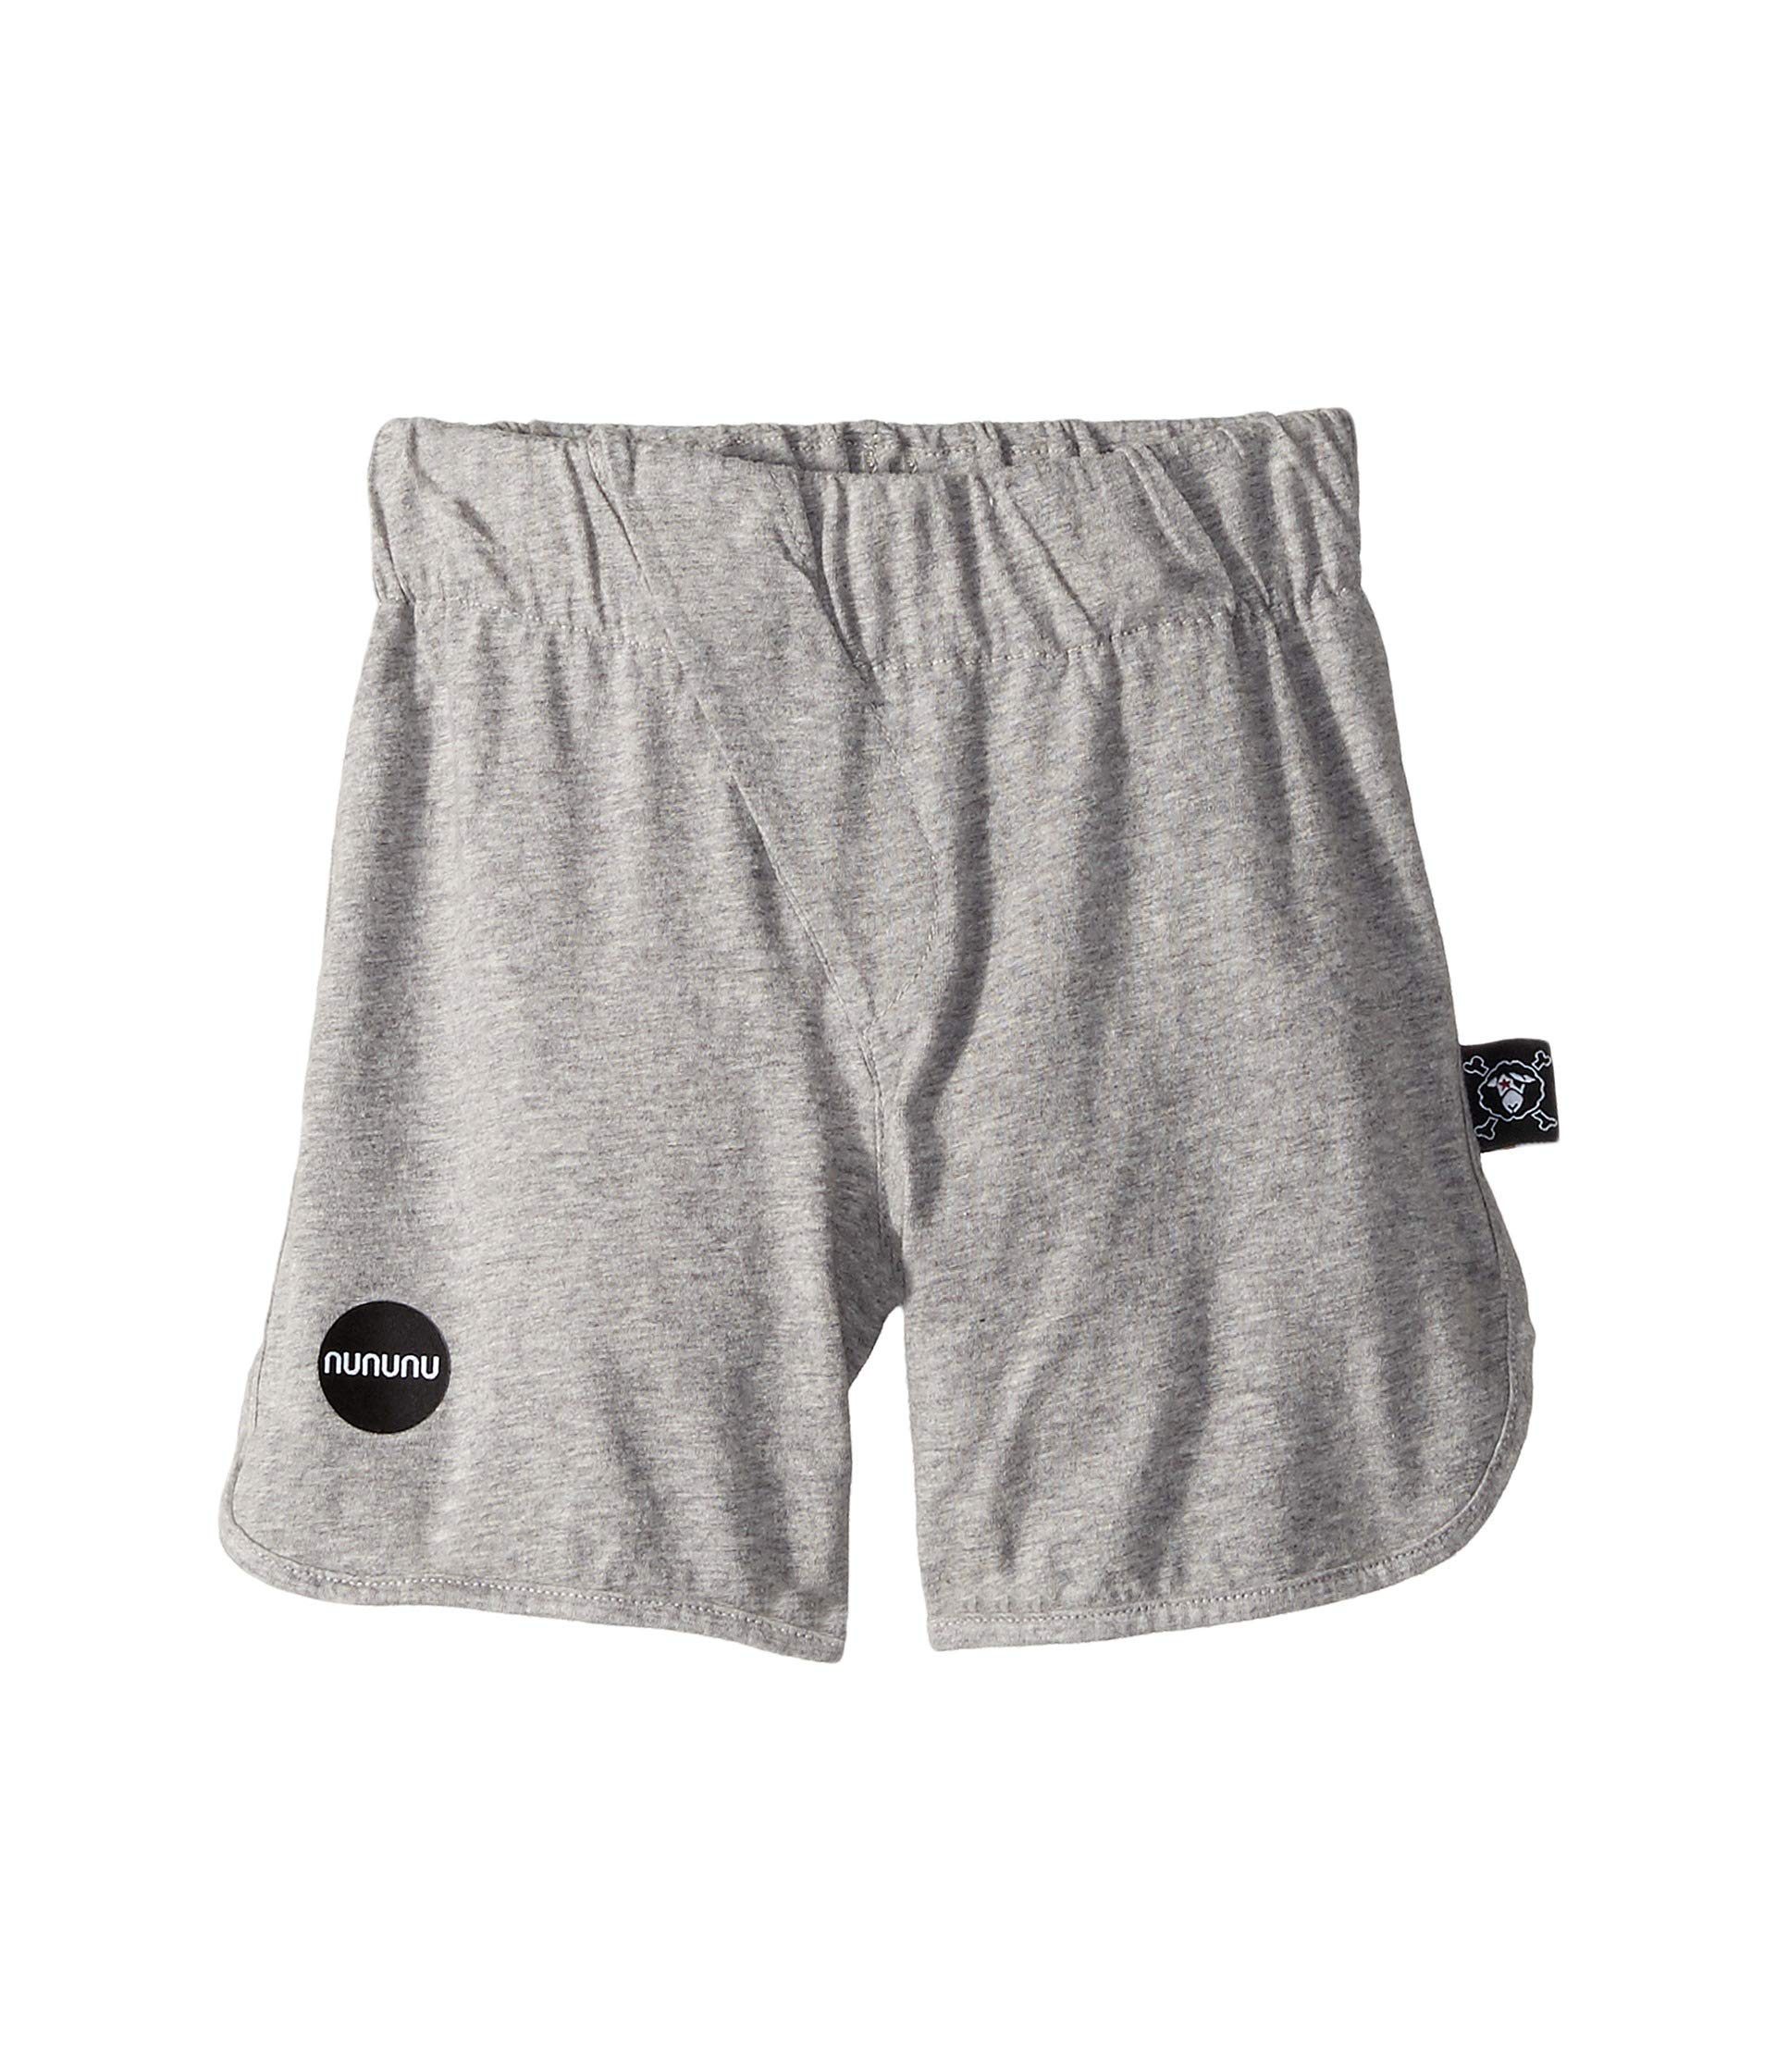 NUNUNU Baby Boy's Diagonal Light Shorts (Toddler/Little Kids) Heather Grey 2-3 Years